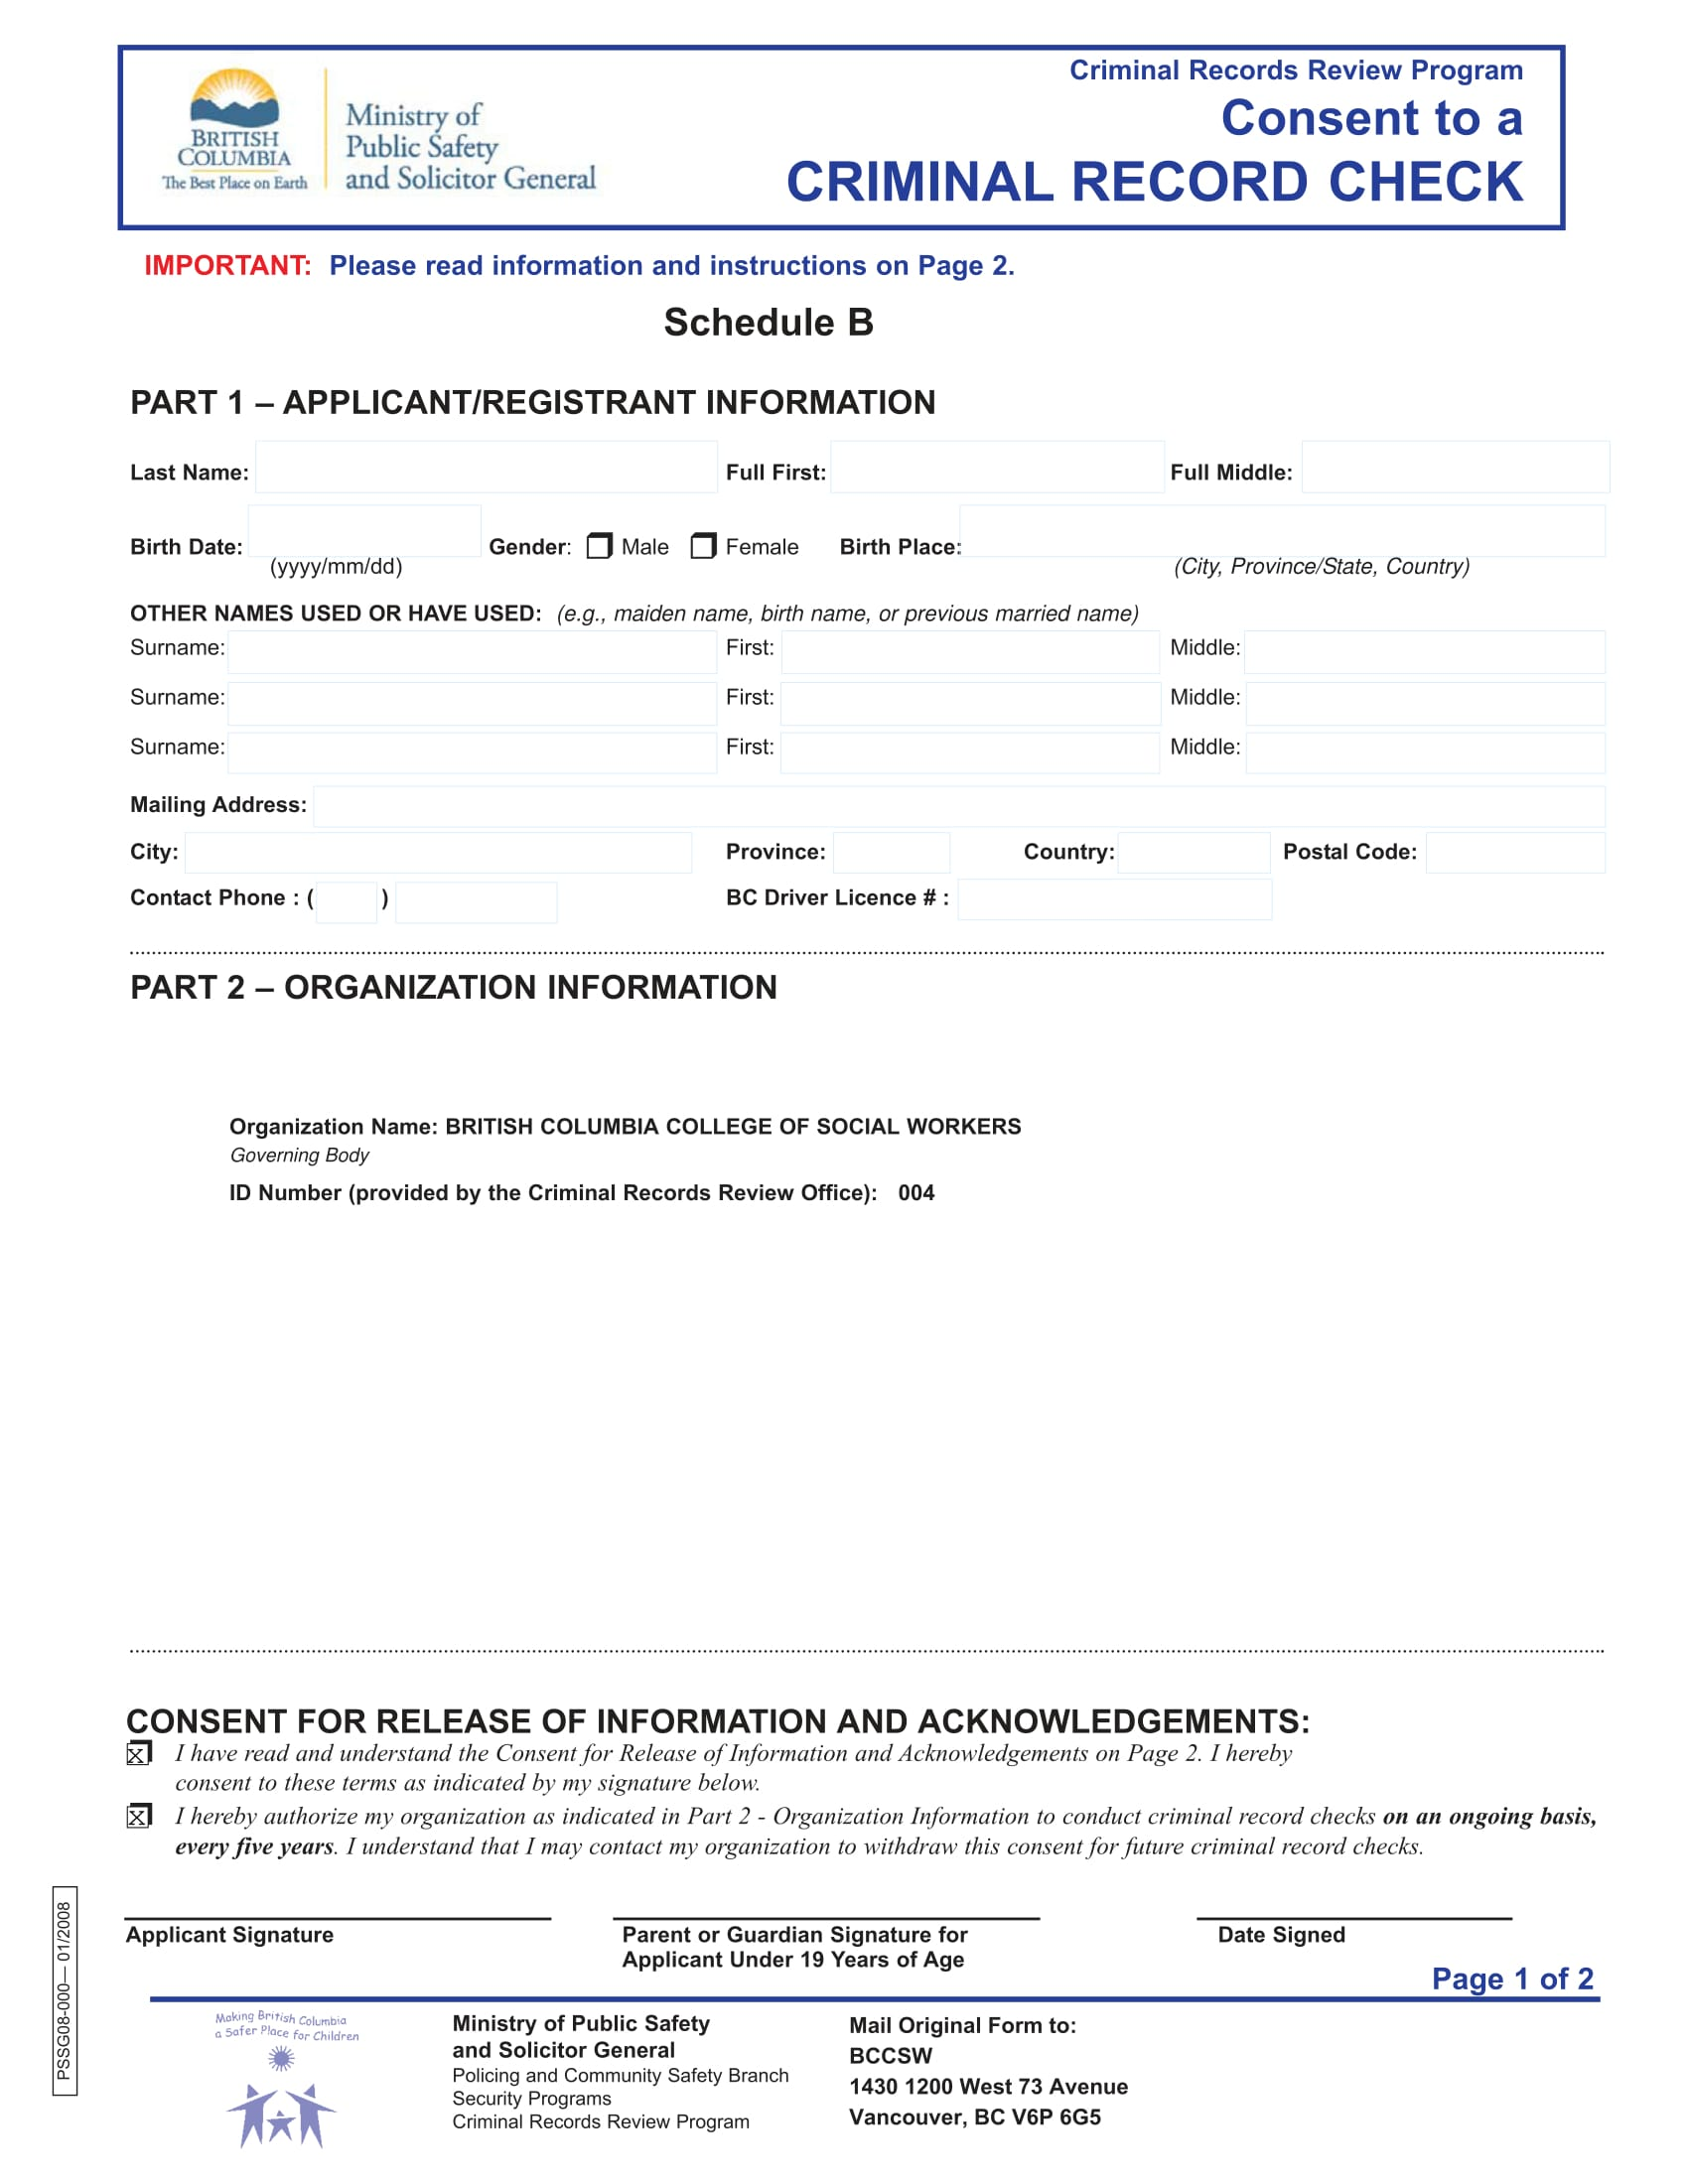 criminal record check or review form 1